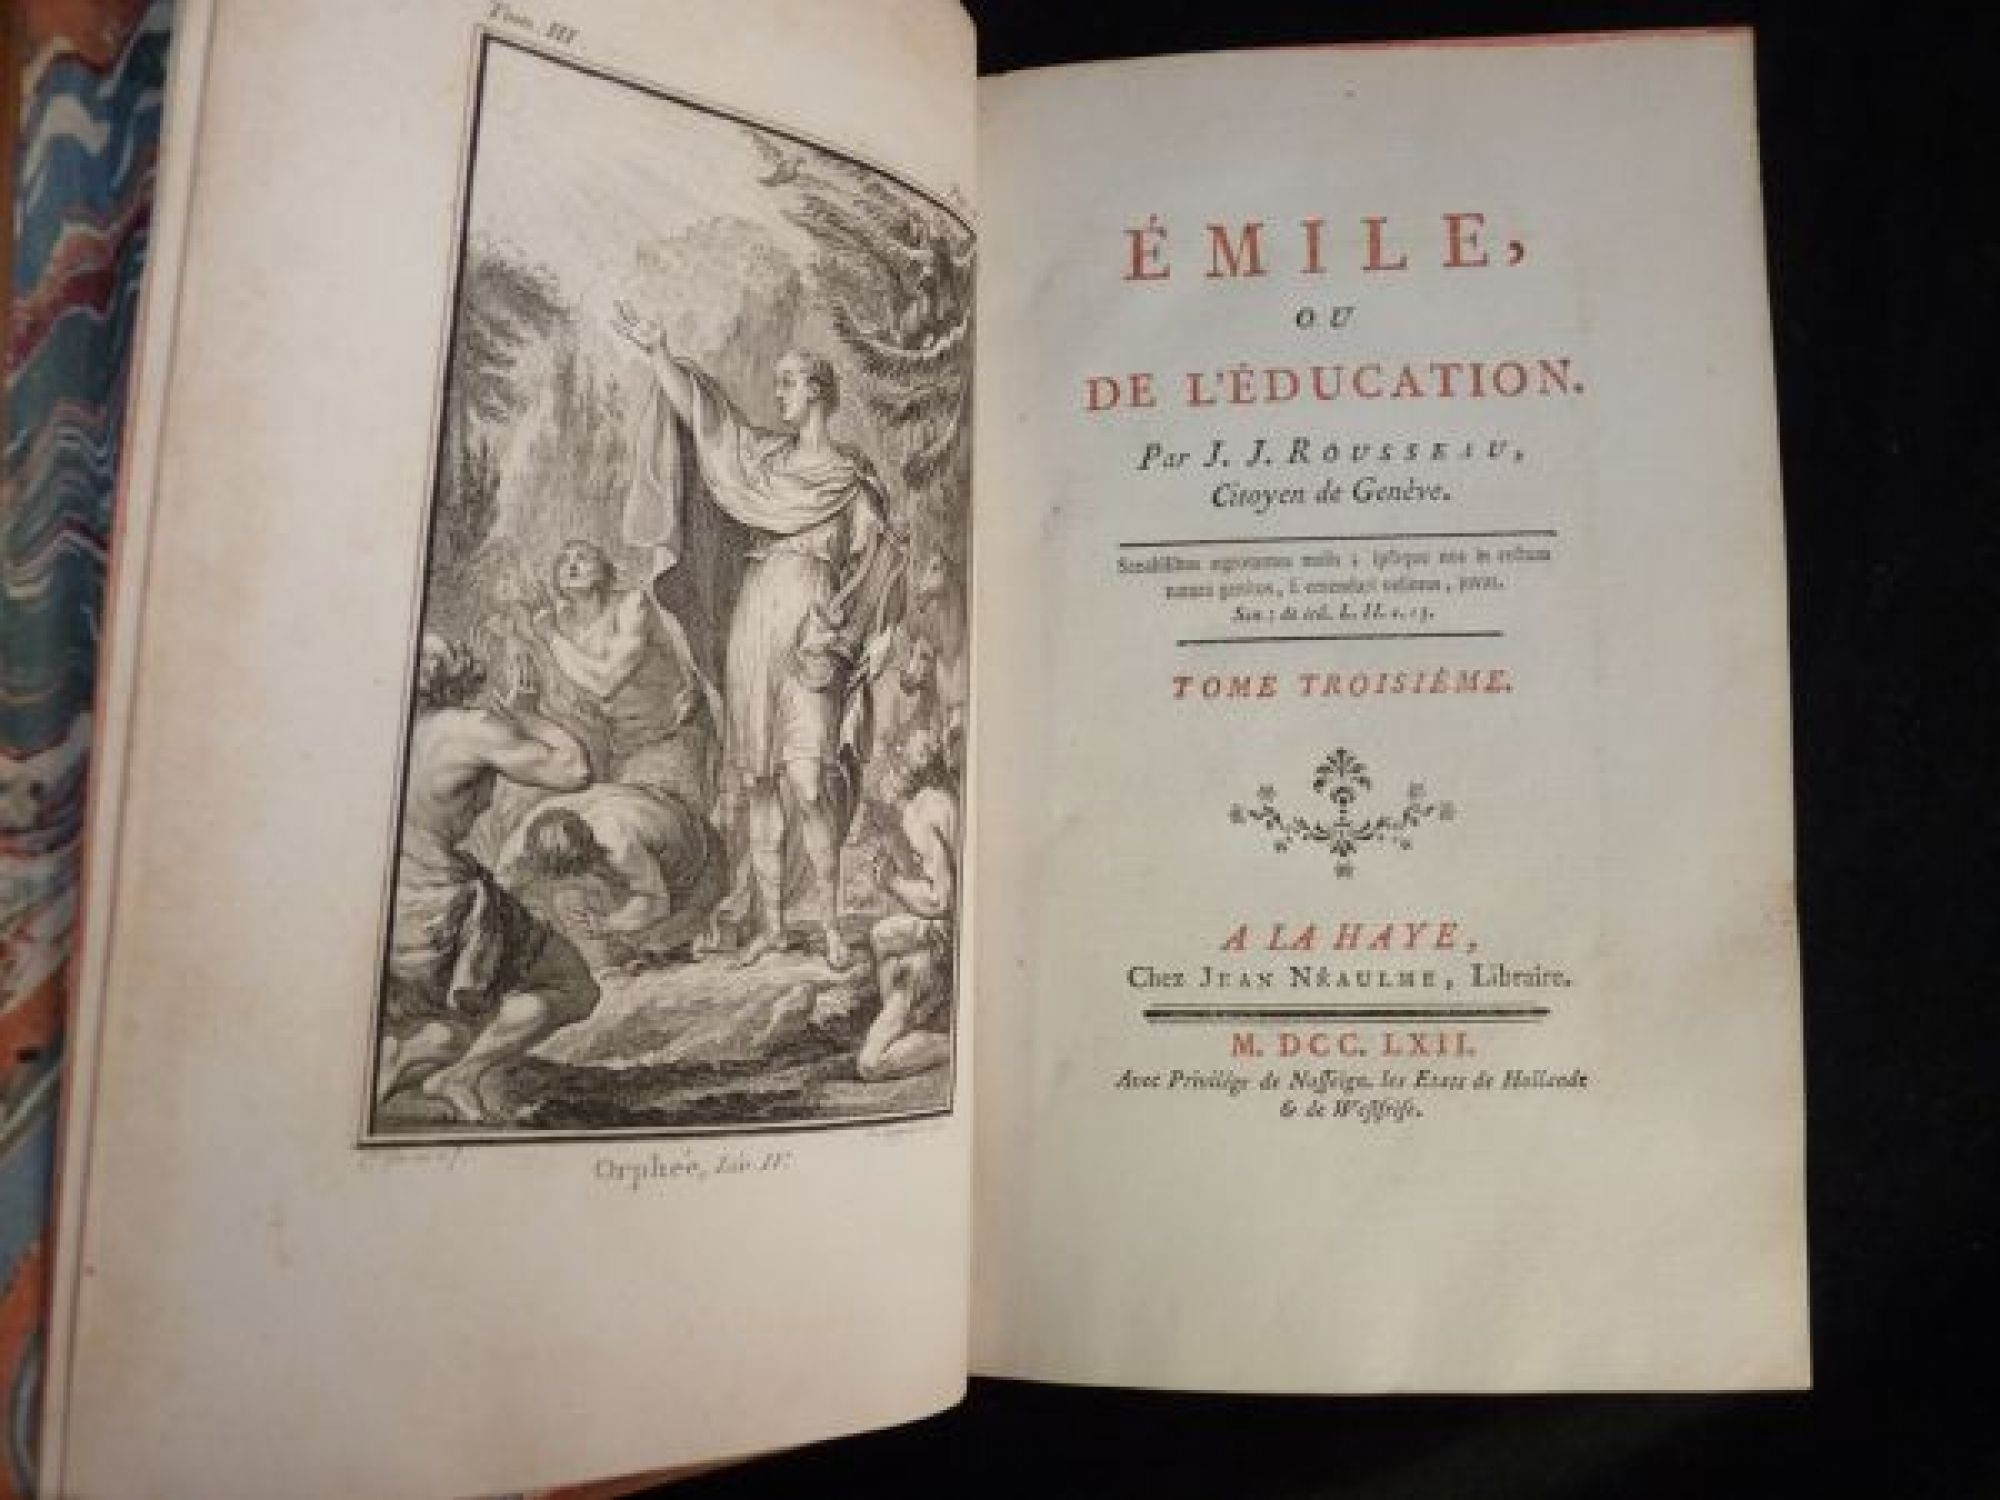 rousseau emile education Jean jacques rousseau's book on education has had a powerful influence  throughout europe, and even in the new world- it was in its day a kind of.